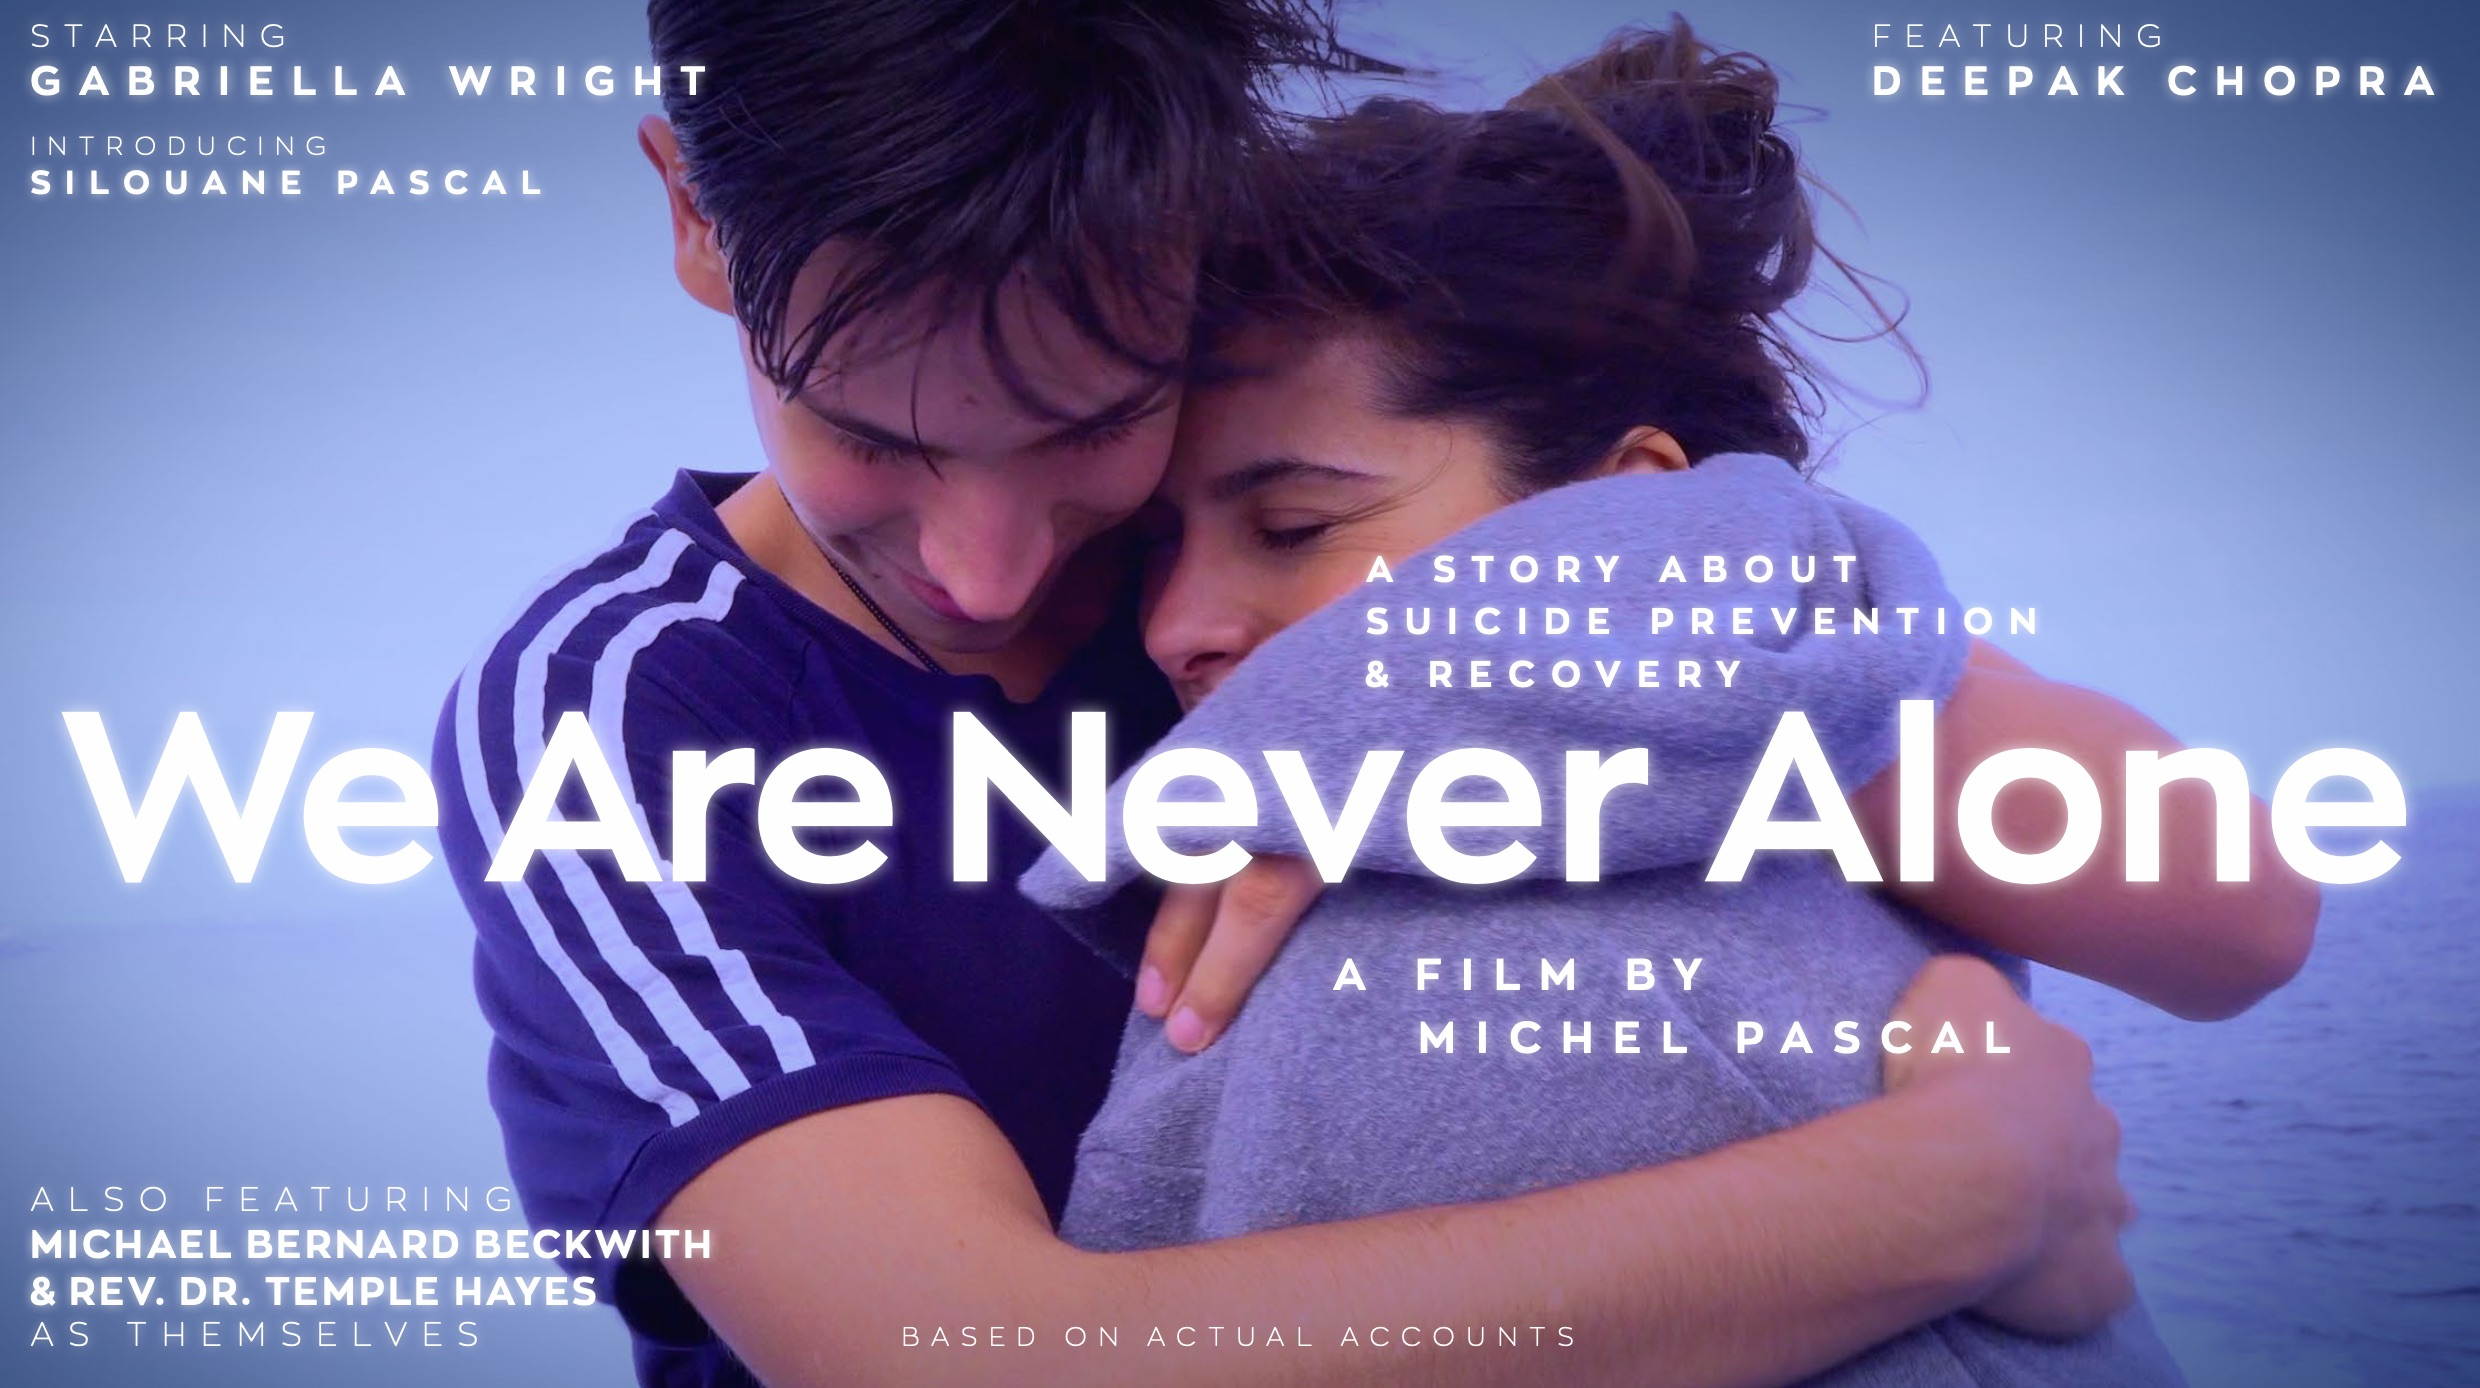 We are Never Alone film poster